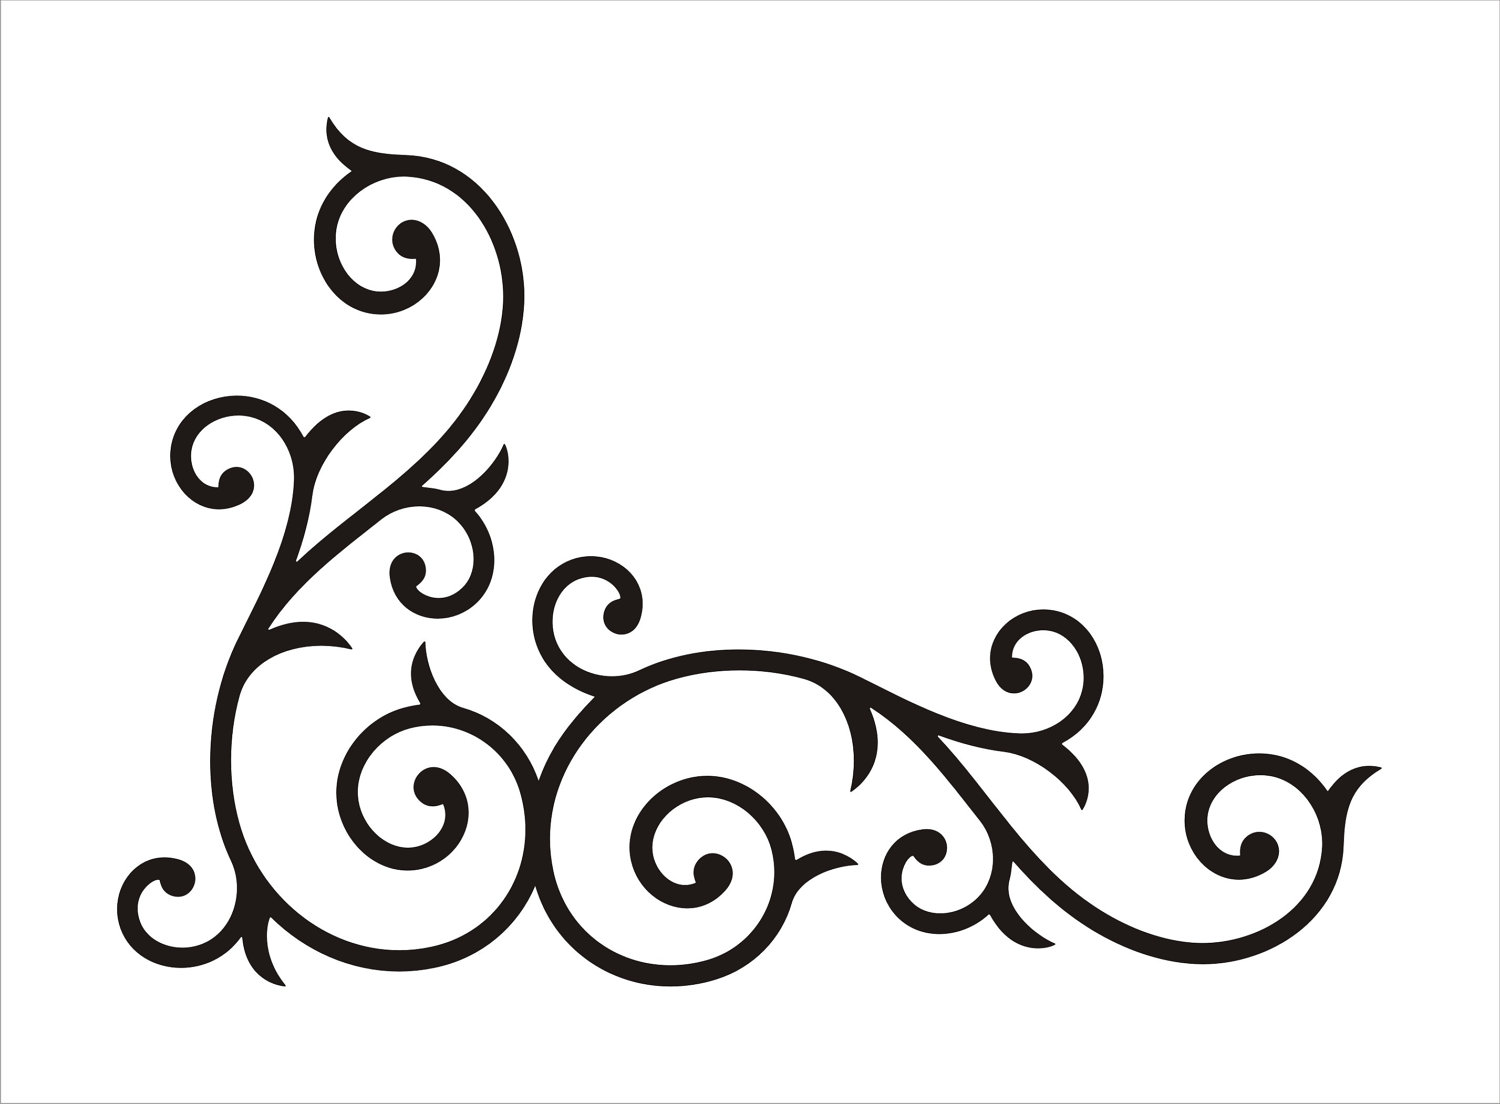 Award scroll corners clipart clipart library download Scroll Vector Art Clipart | Free download best Scroll Vector Art ... clipart library download